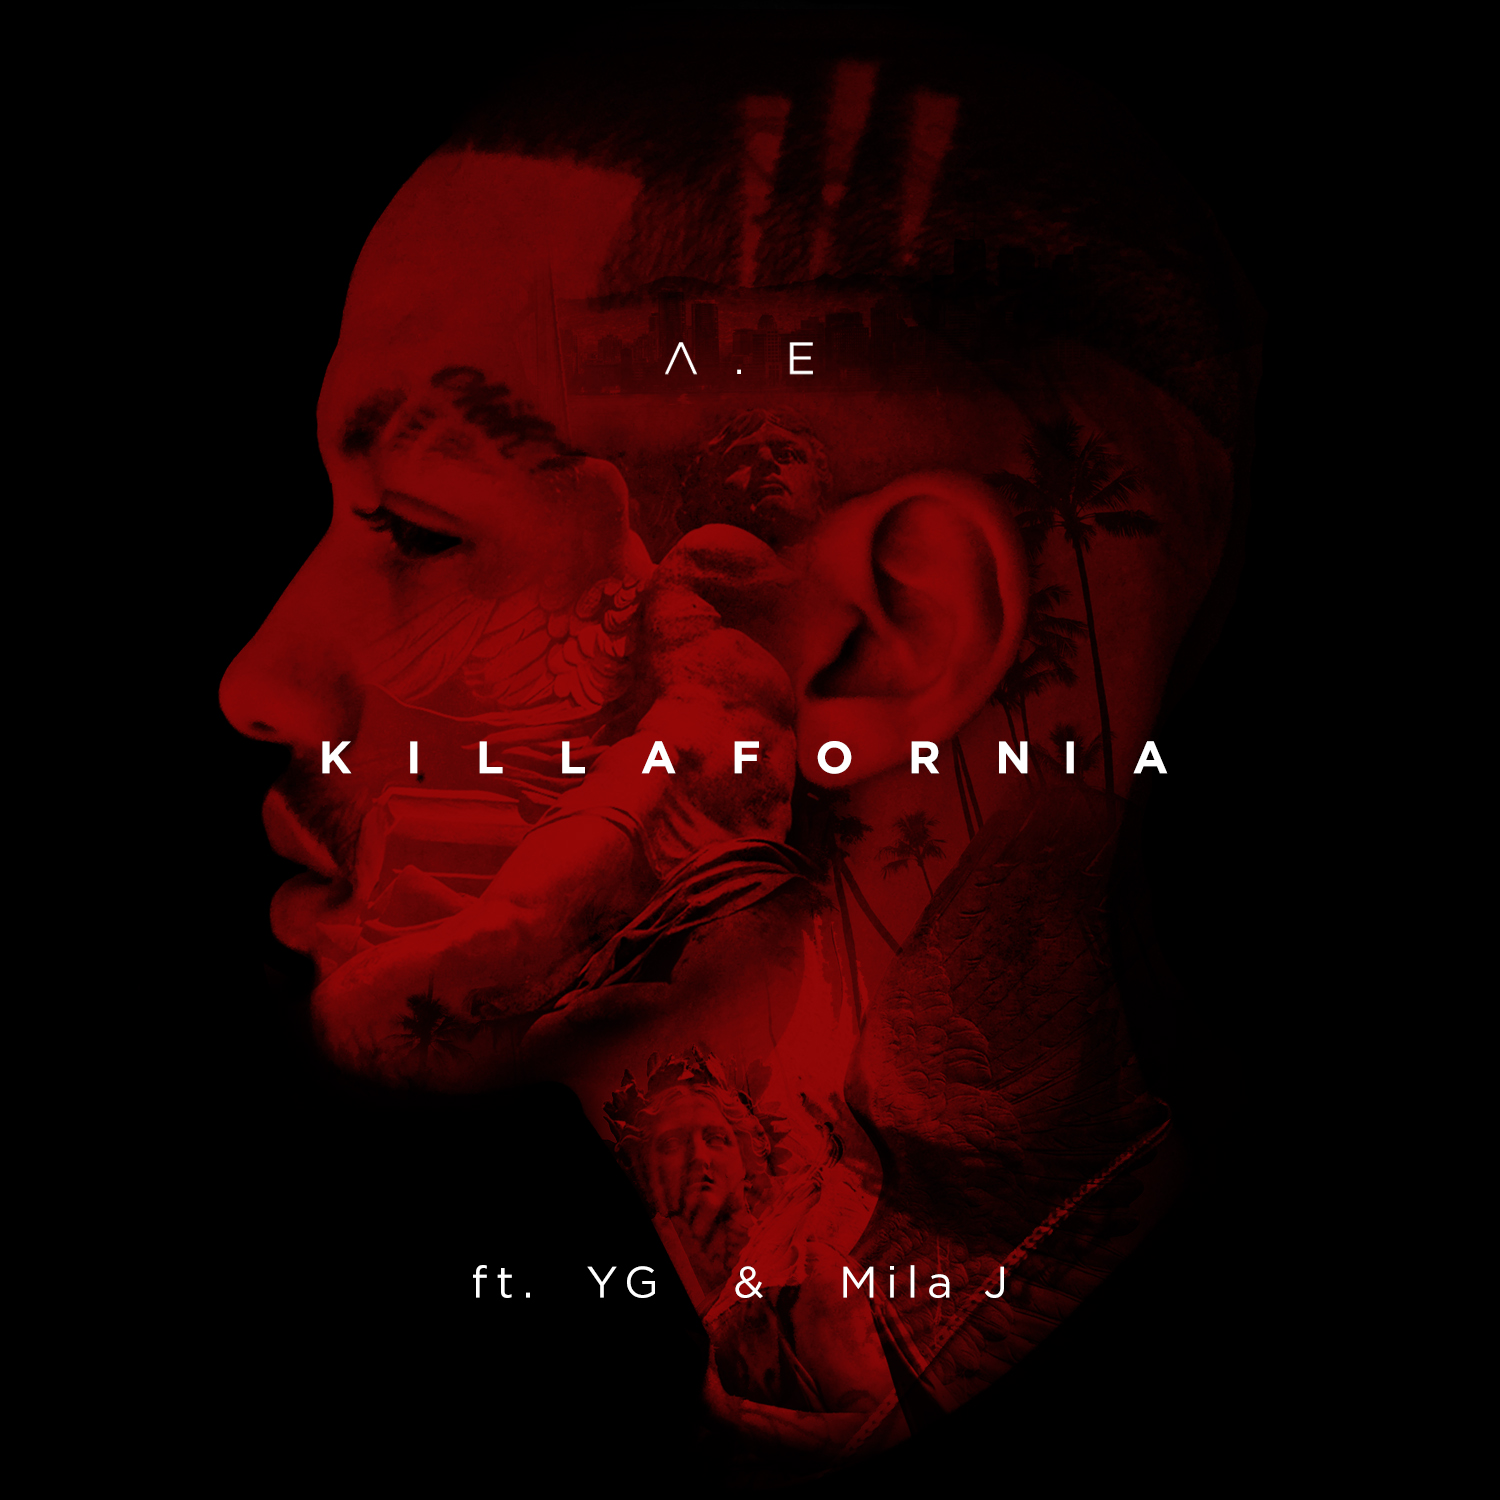 KILLAfornia cover art